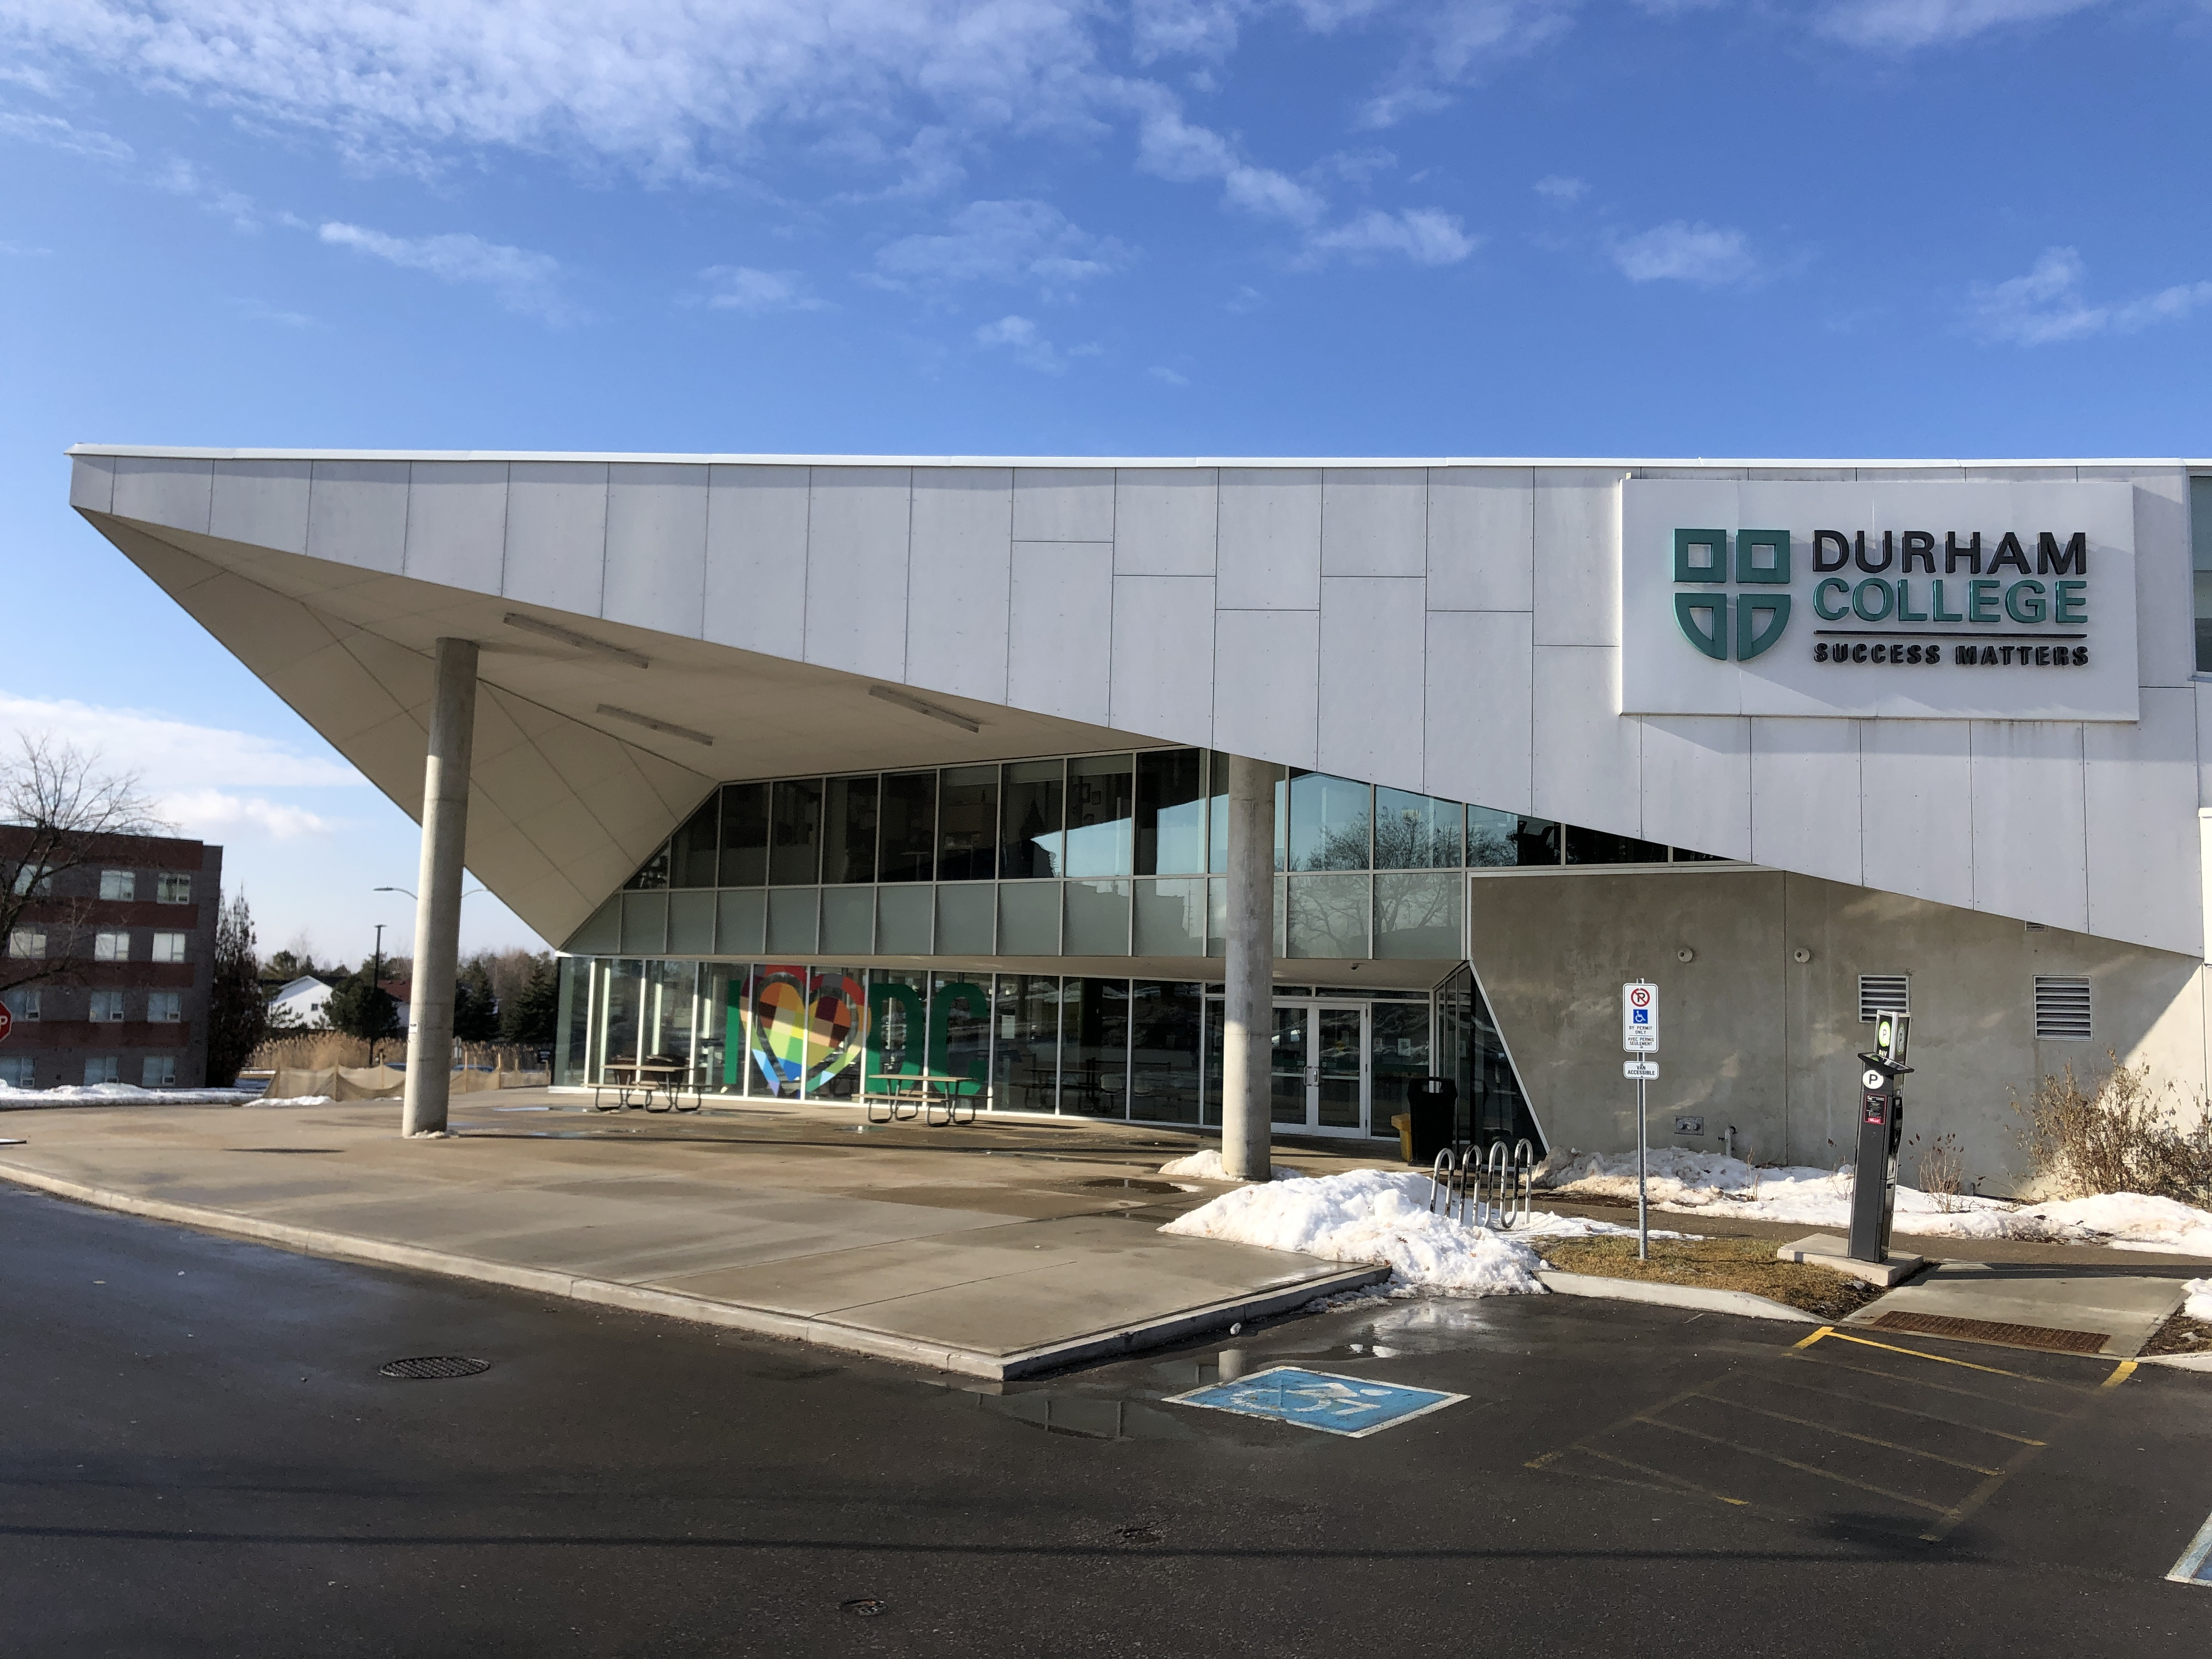 Exterior of Durham College building